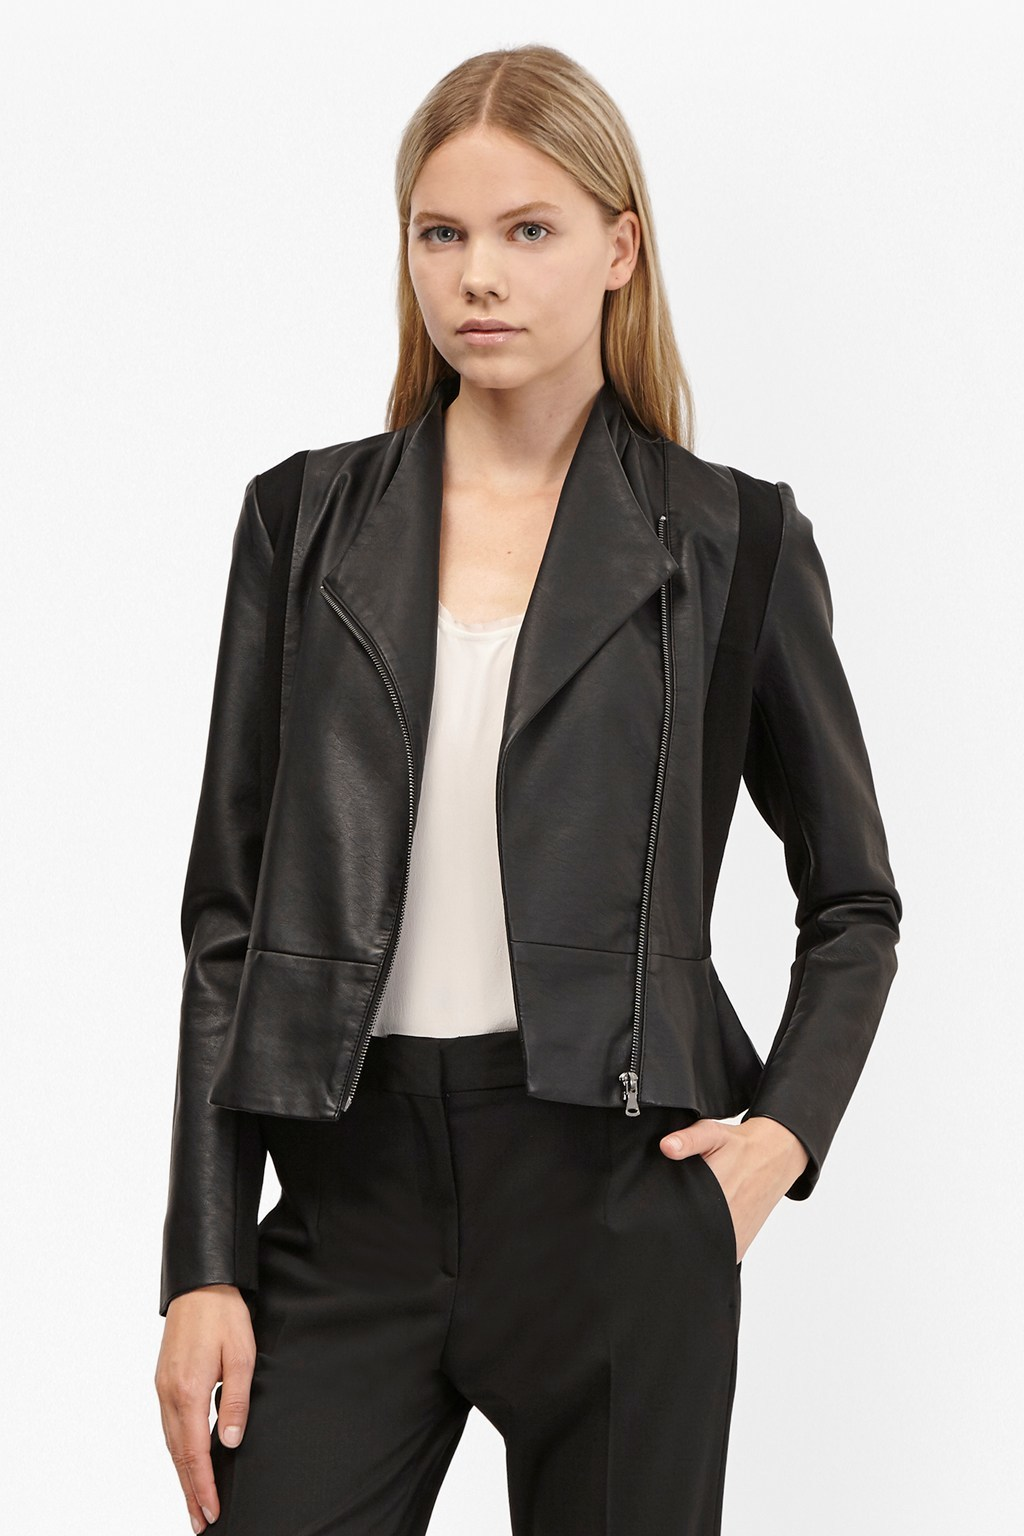 Chariot Pu Wrapover Jacket Black - pattern: plain; style: biker; collar: asymmetric biker; fit: slim fit; predominant colour: black; occasions: casual; length: standard; fibres: leather - 100%; sleeve length: long sleeve; sleeve style: standard; texture group: leather; collar break: low/open; pattern type: fabric; season: s/s 2016; wardrobe: basic